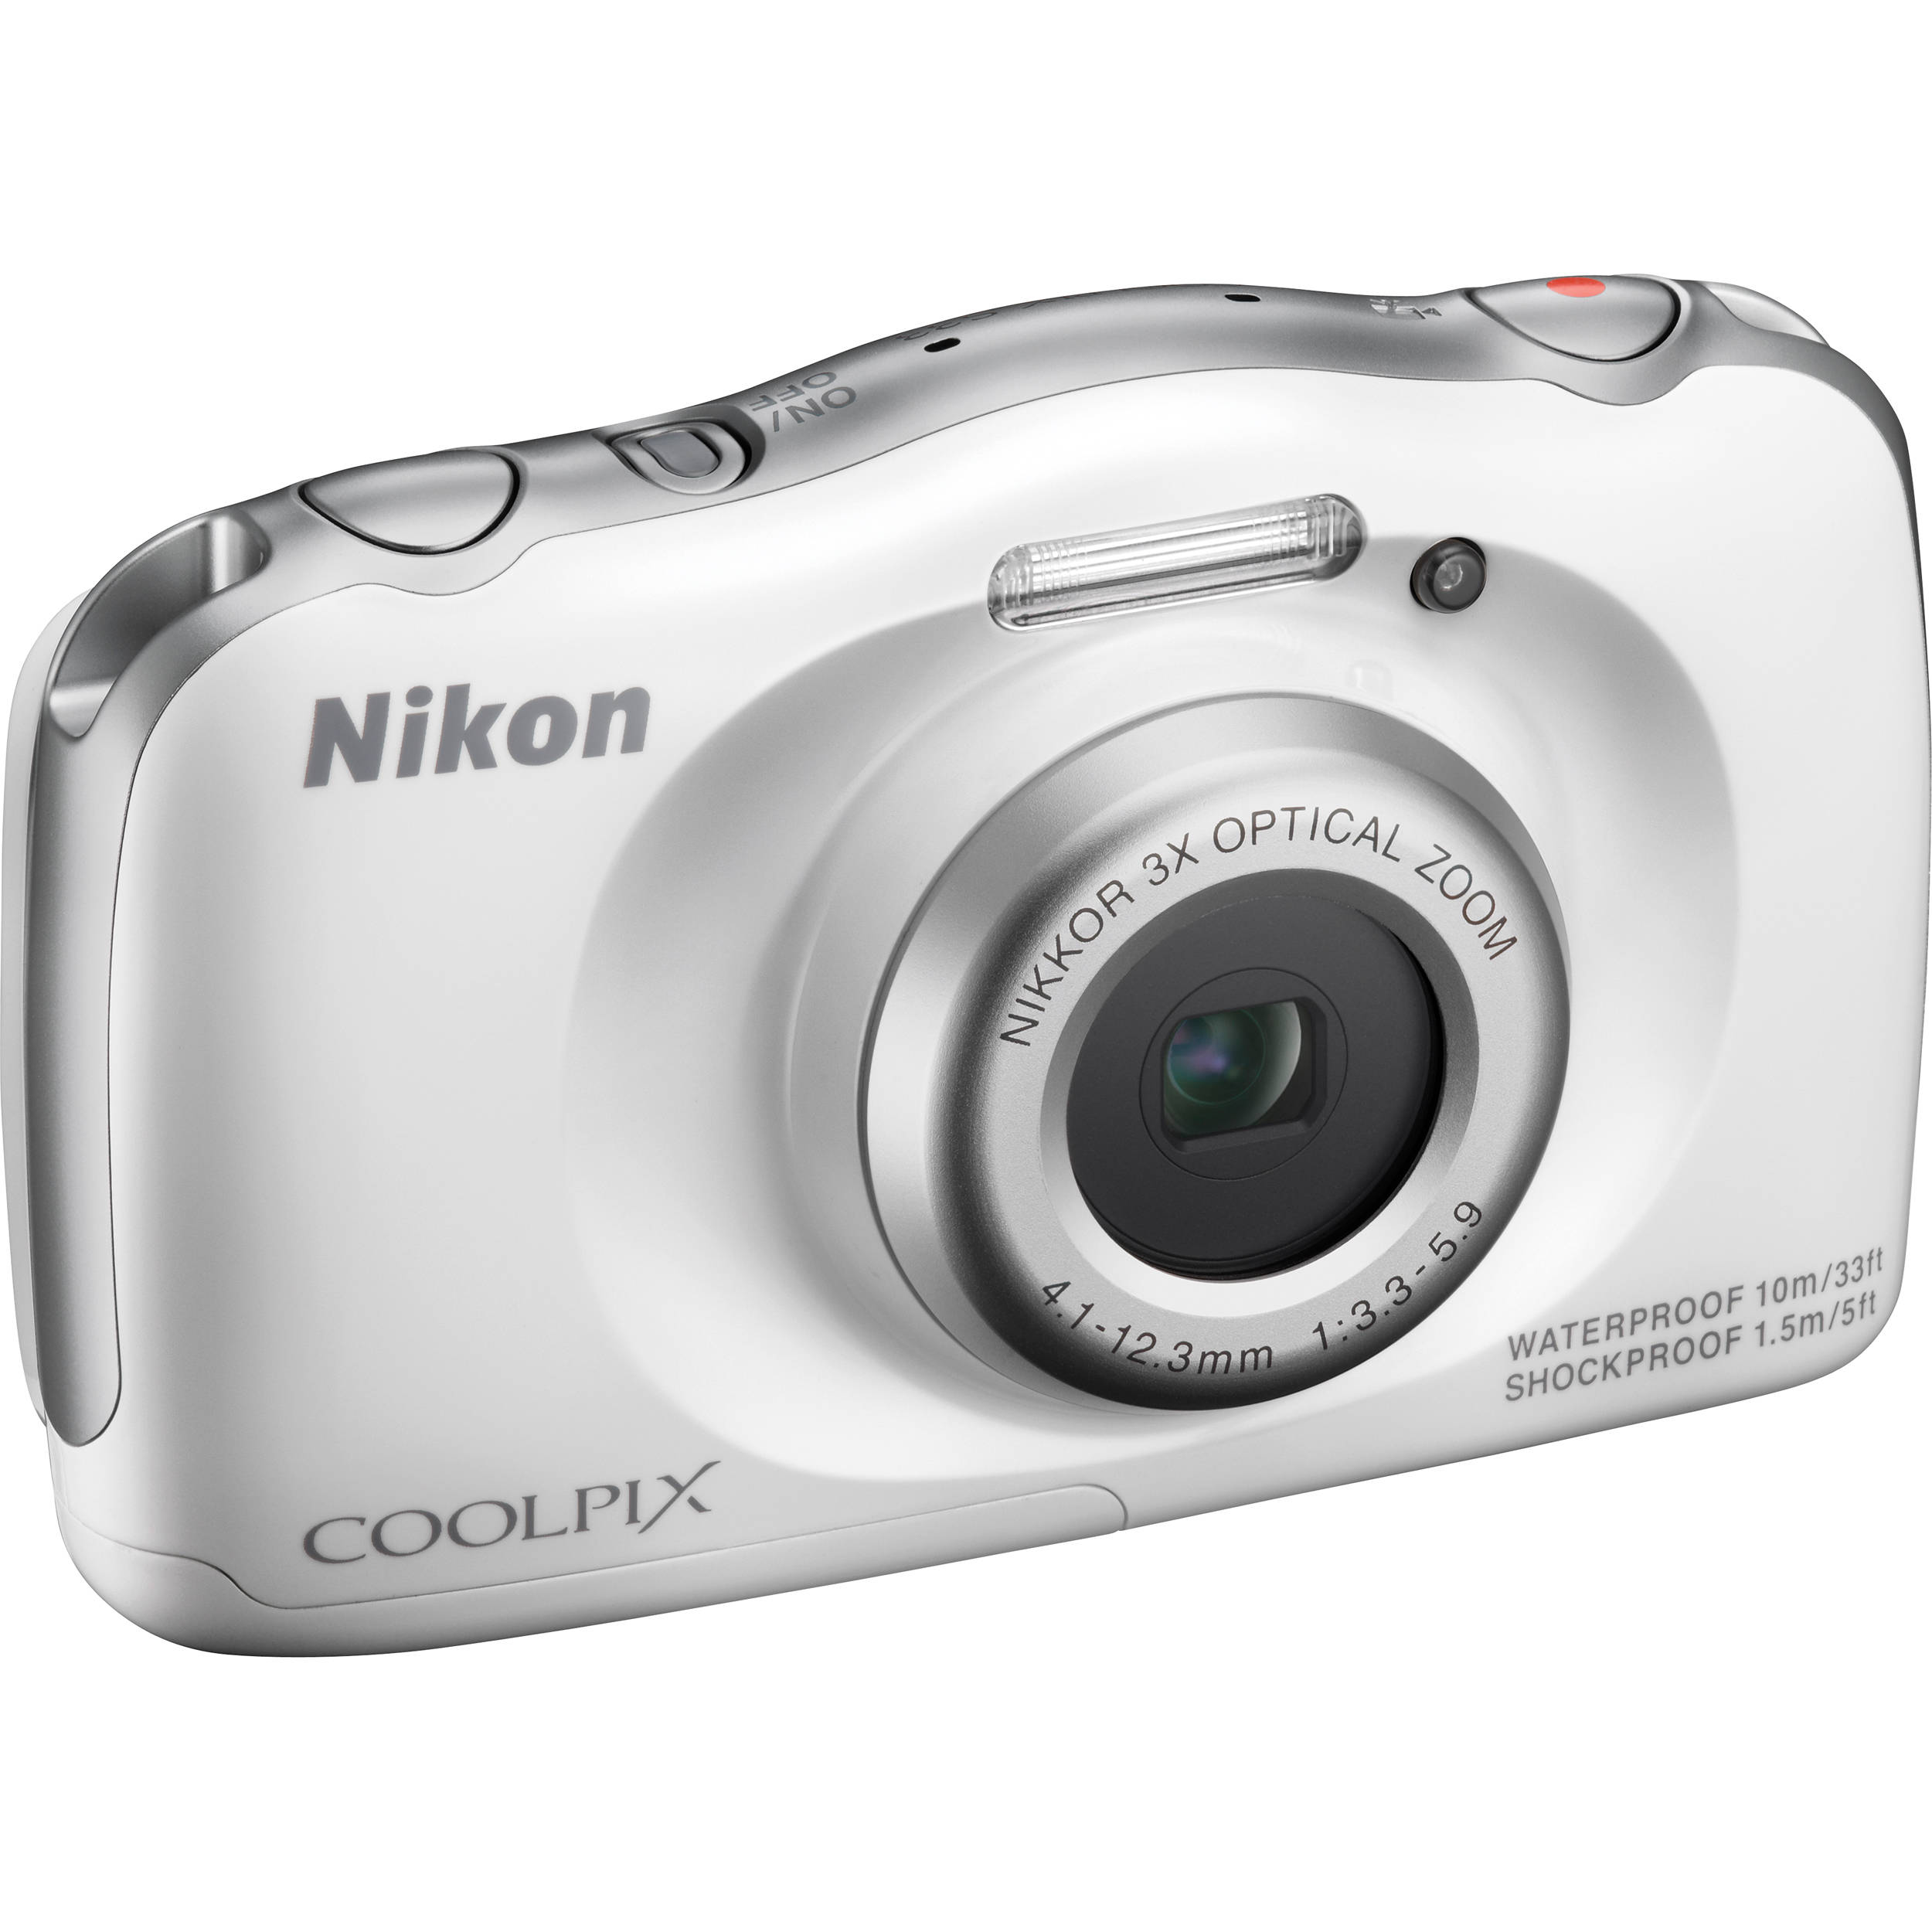 nikon coolpix s33 digital camera white 26495 b h photo video. Black Bedroom Furniture Sets. Home Design Ideas